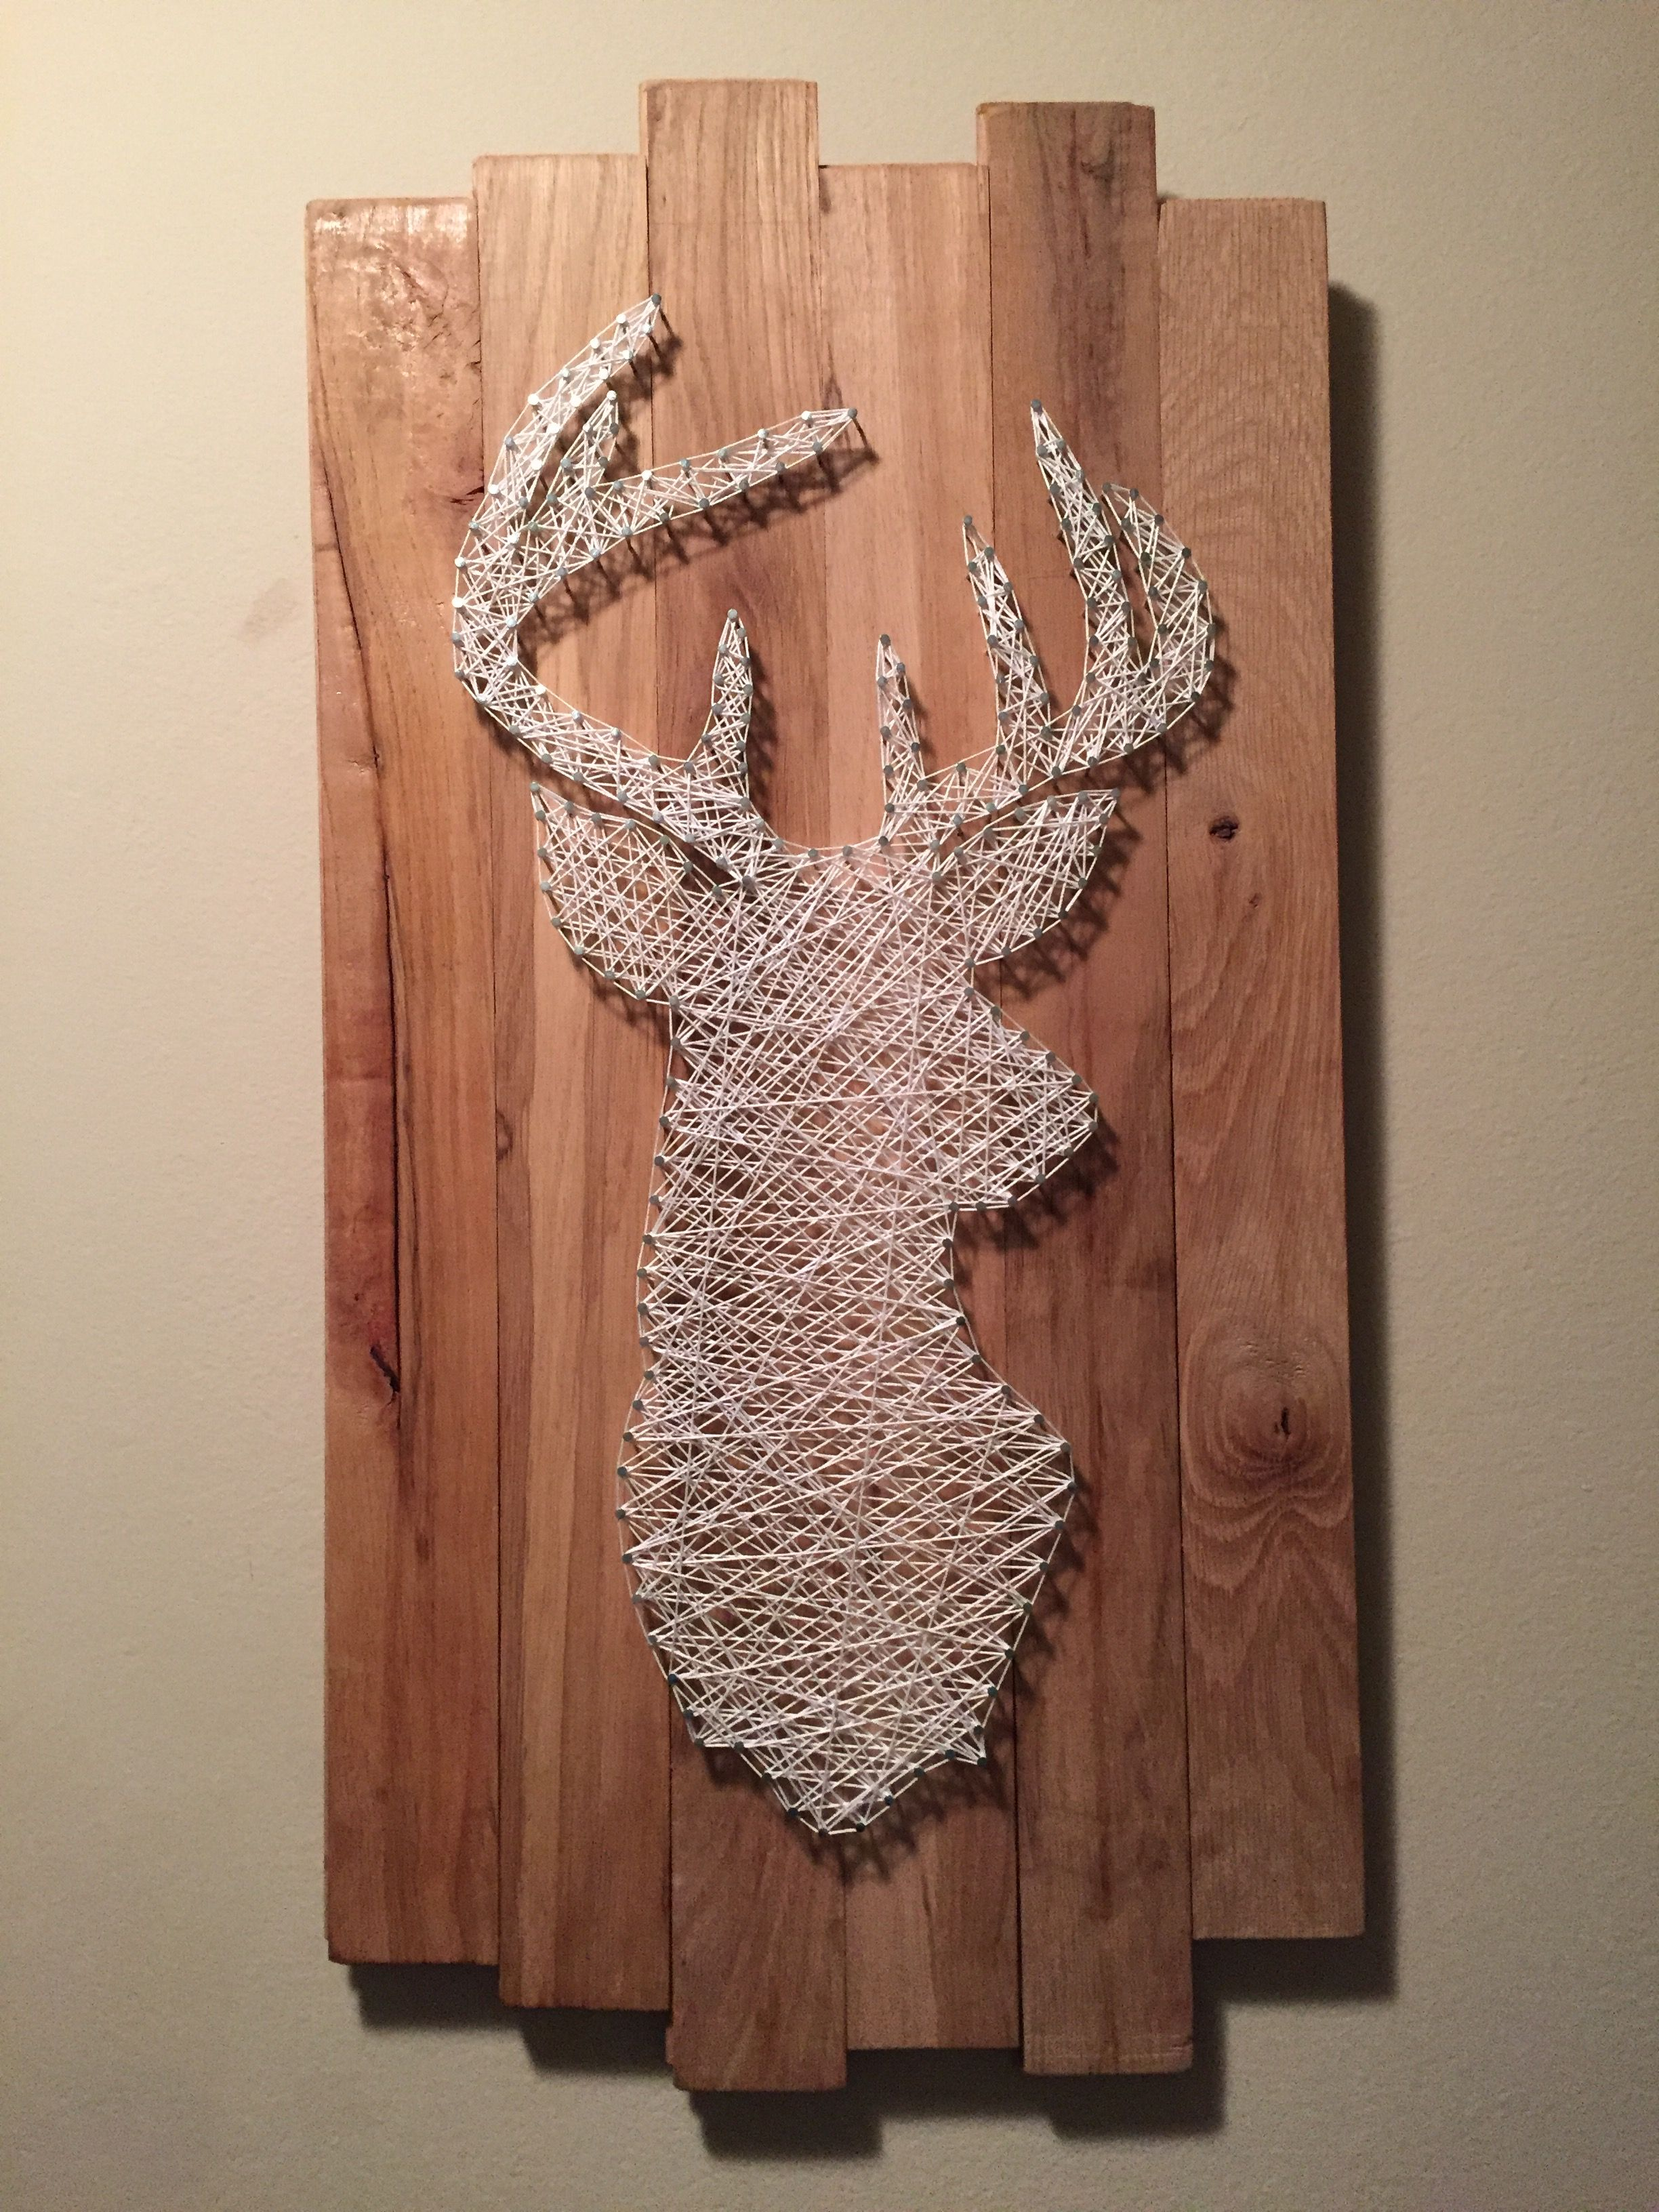 Deer Head String Art Mounted On Hardwood Flooring